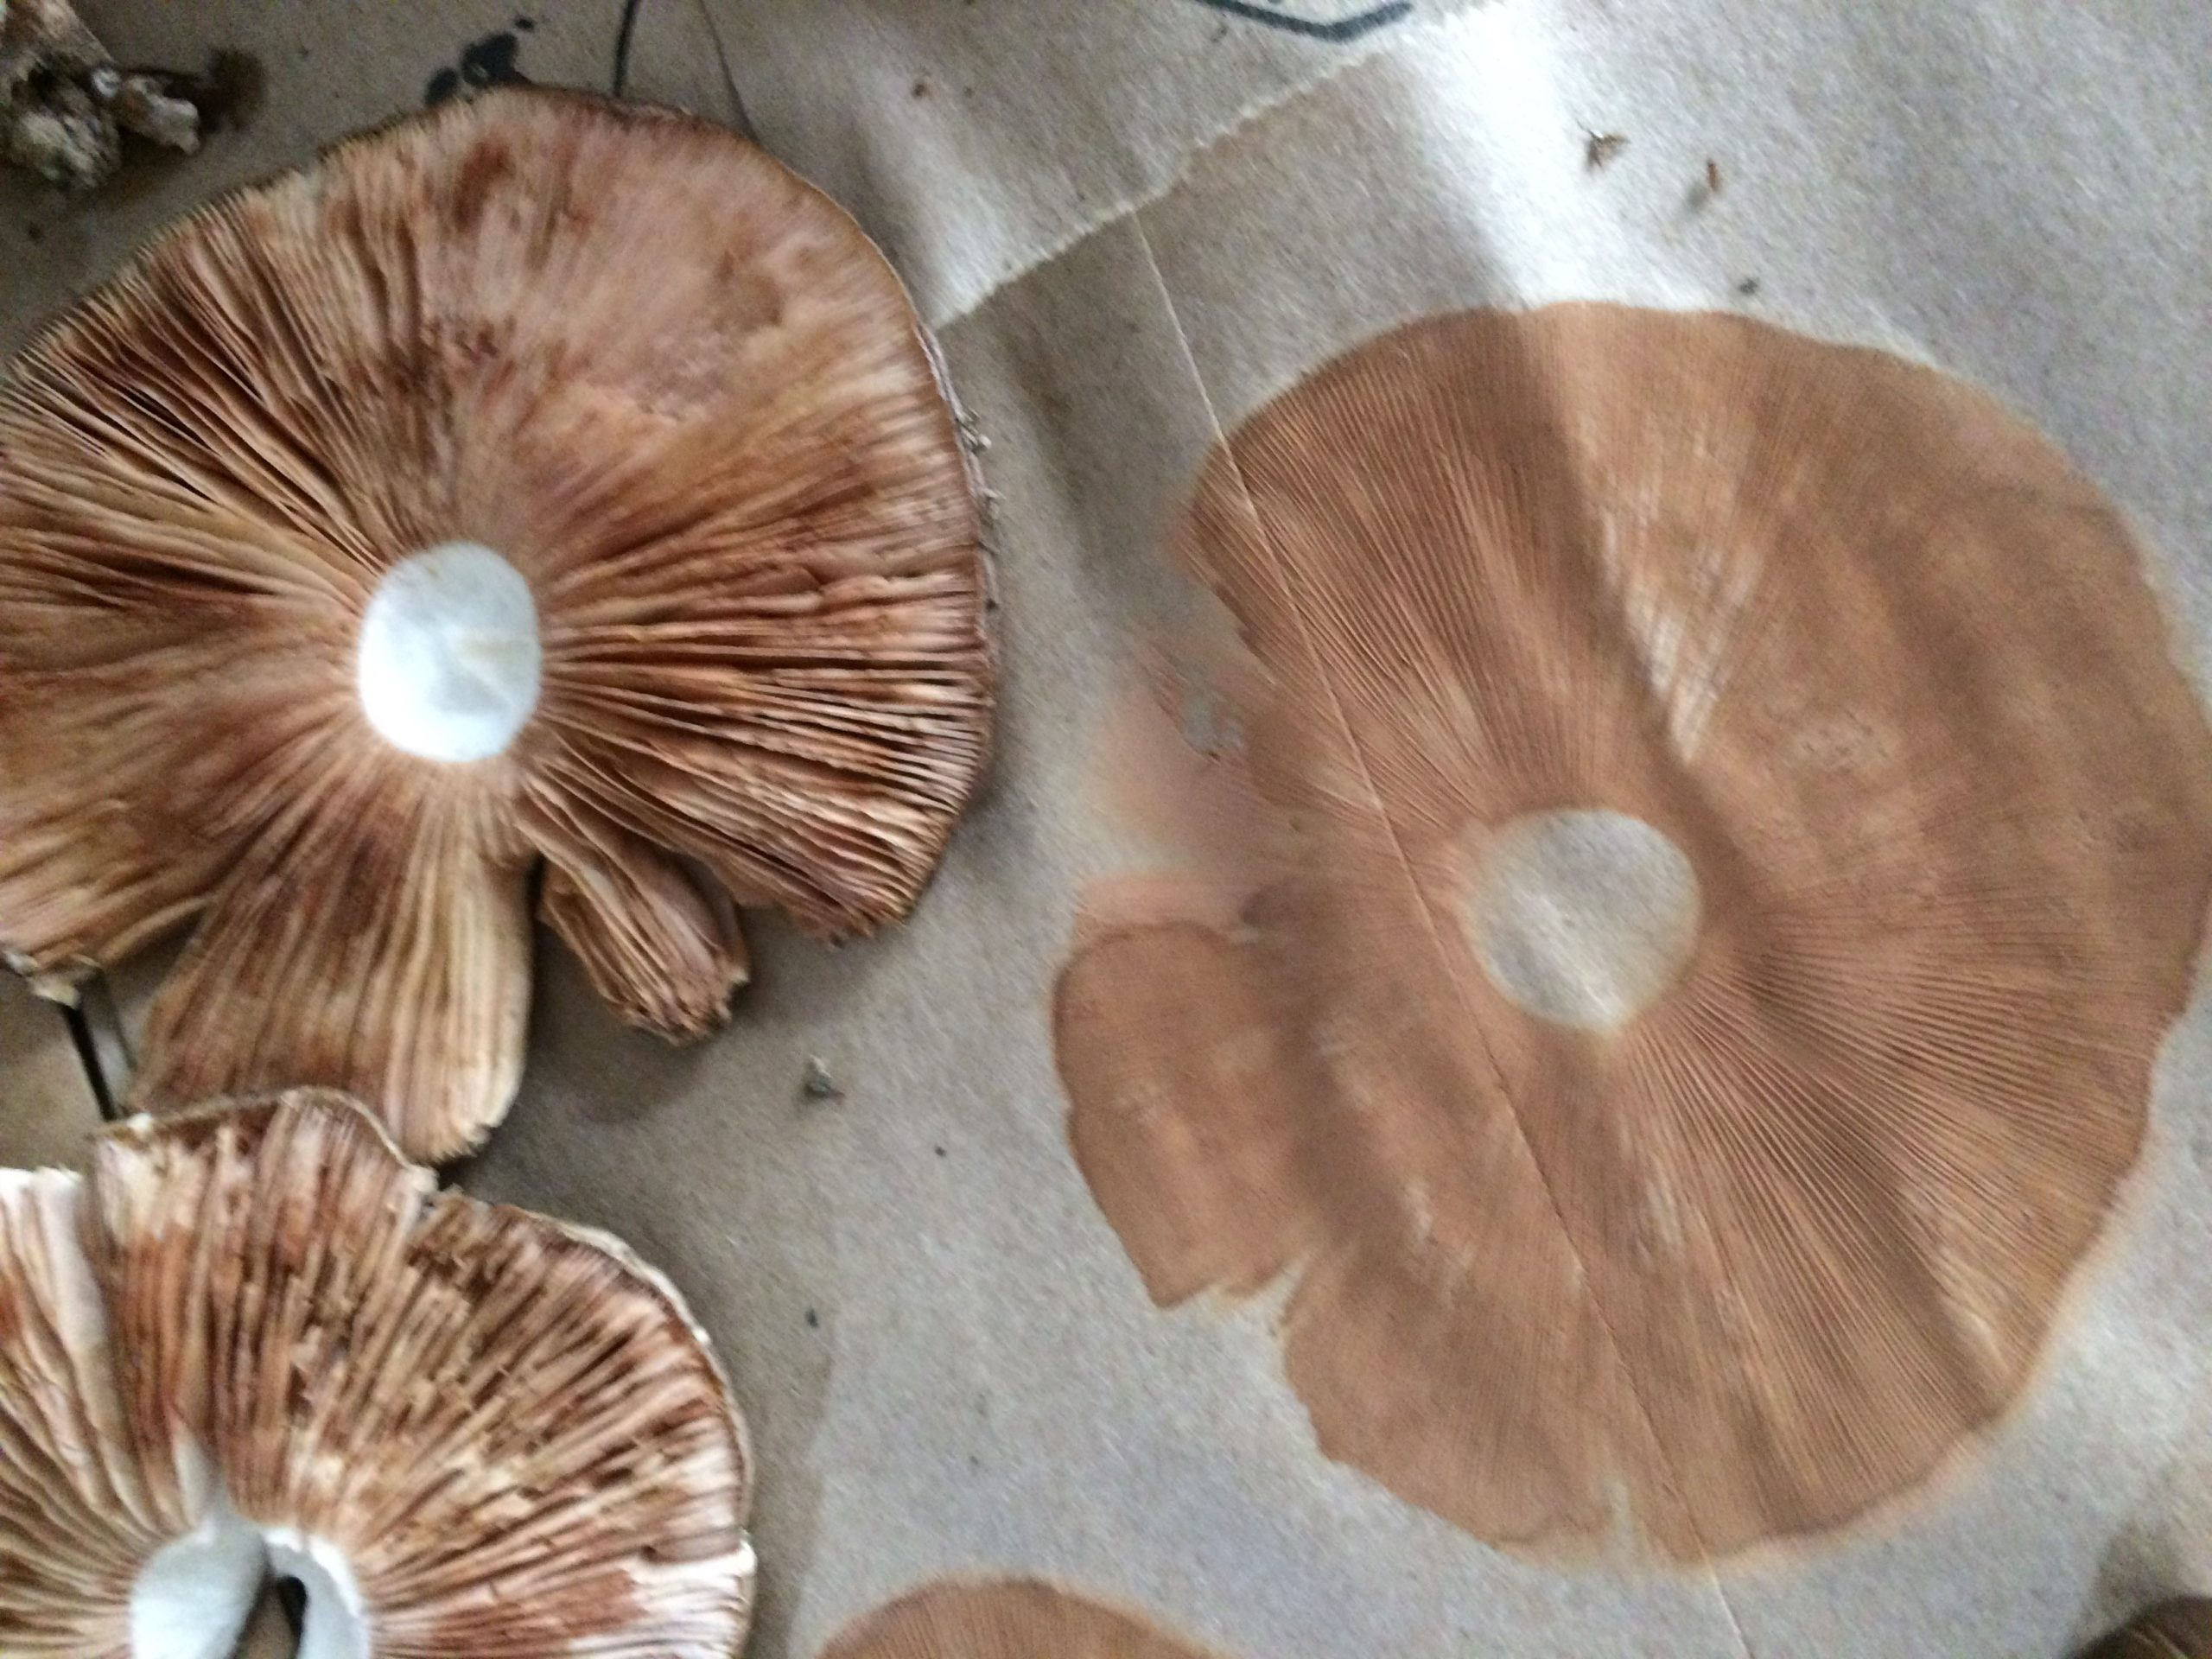 Spore prints are a helpful ID method.